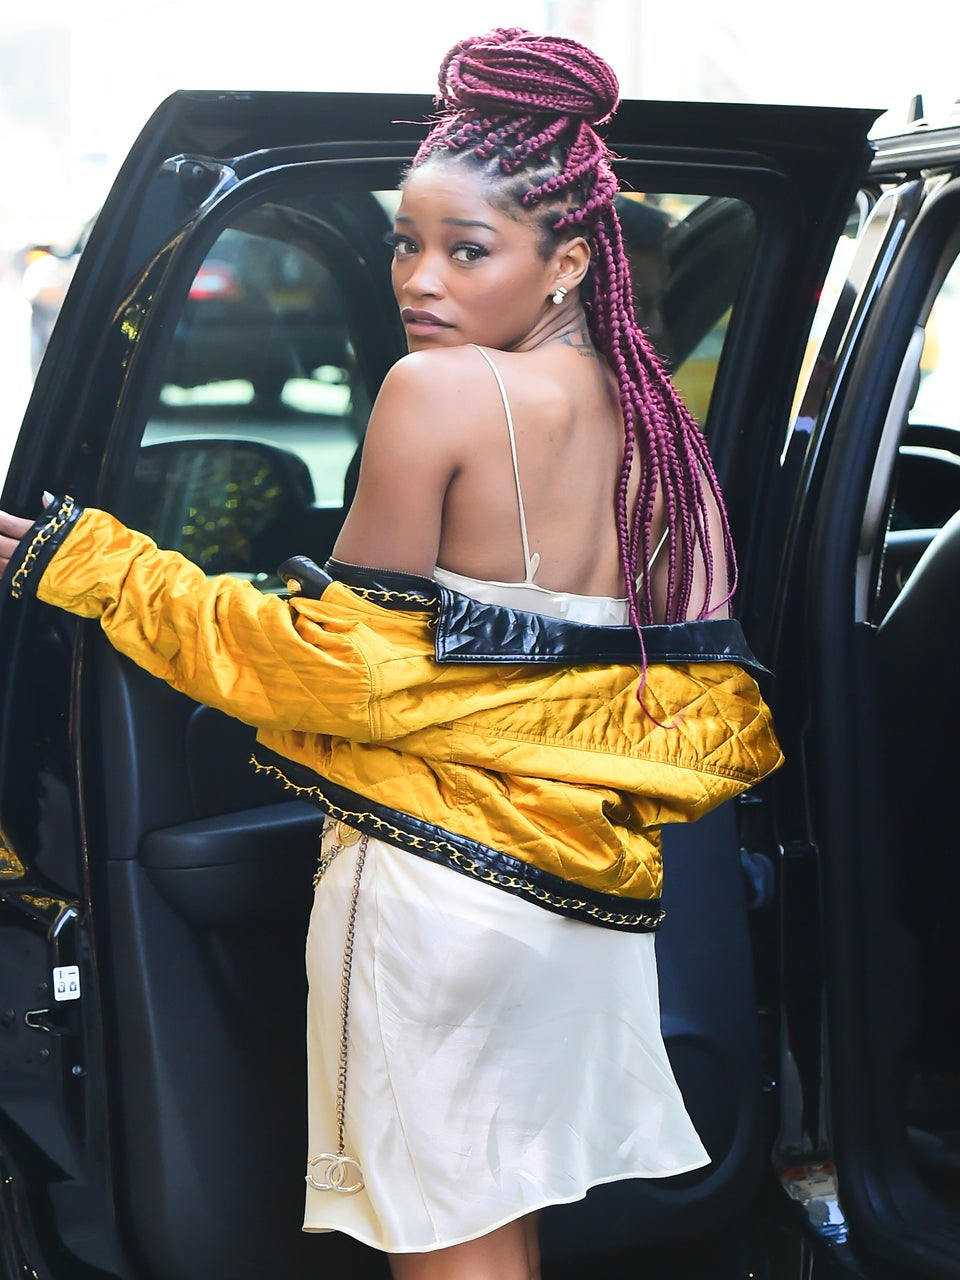 Keke Palmer Is Every Girl After She Leaves The Salon In This Video